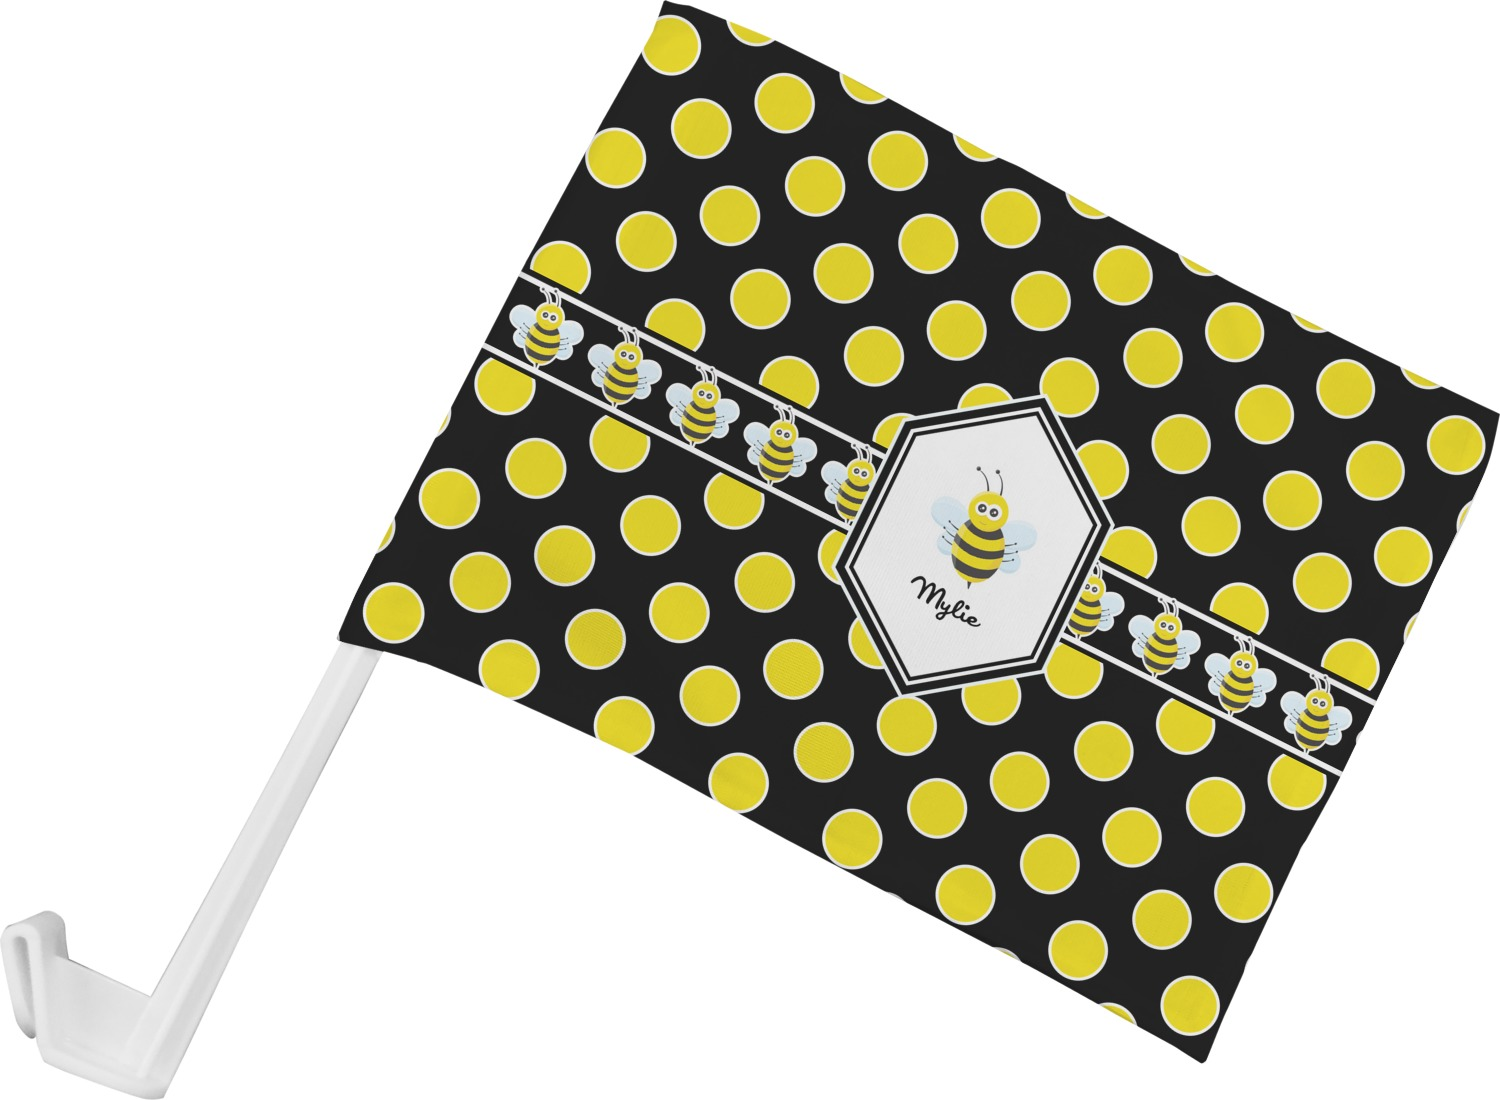 Design car flags - Bee Polka Dots Car Flag Personalized